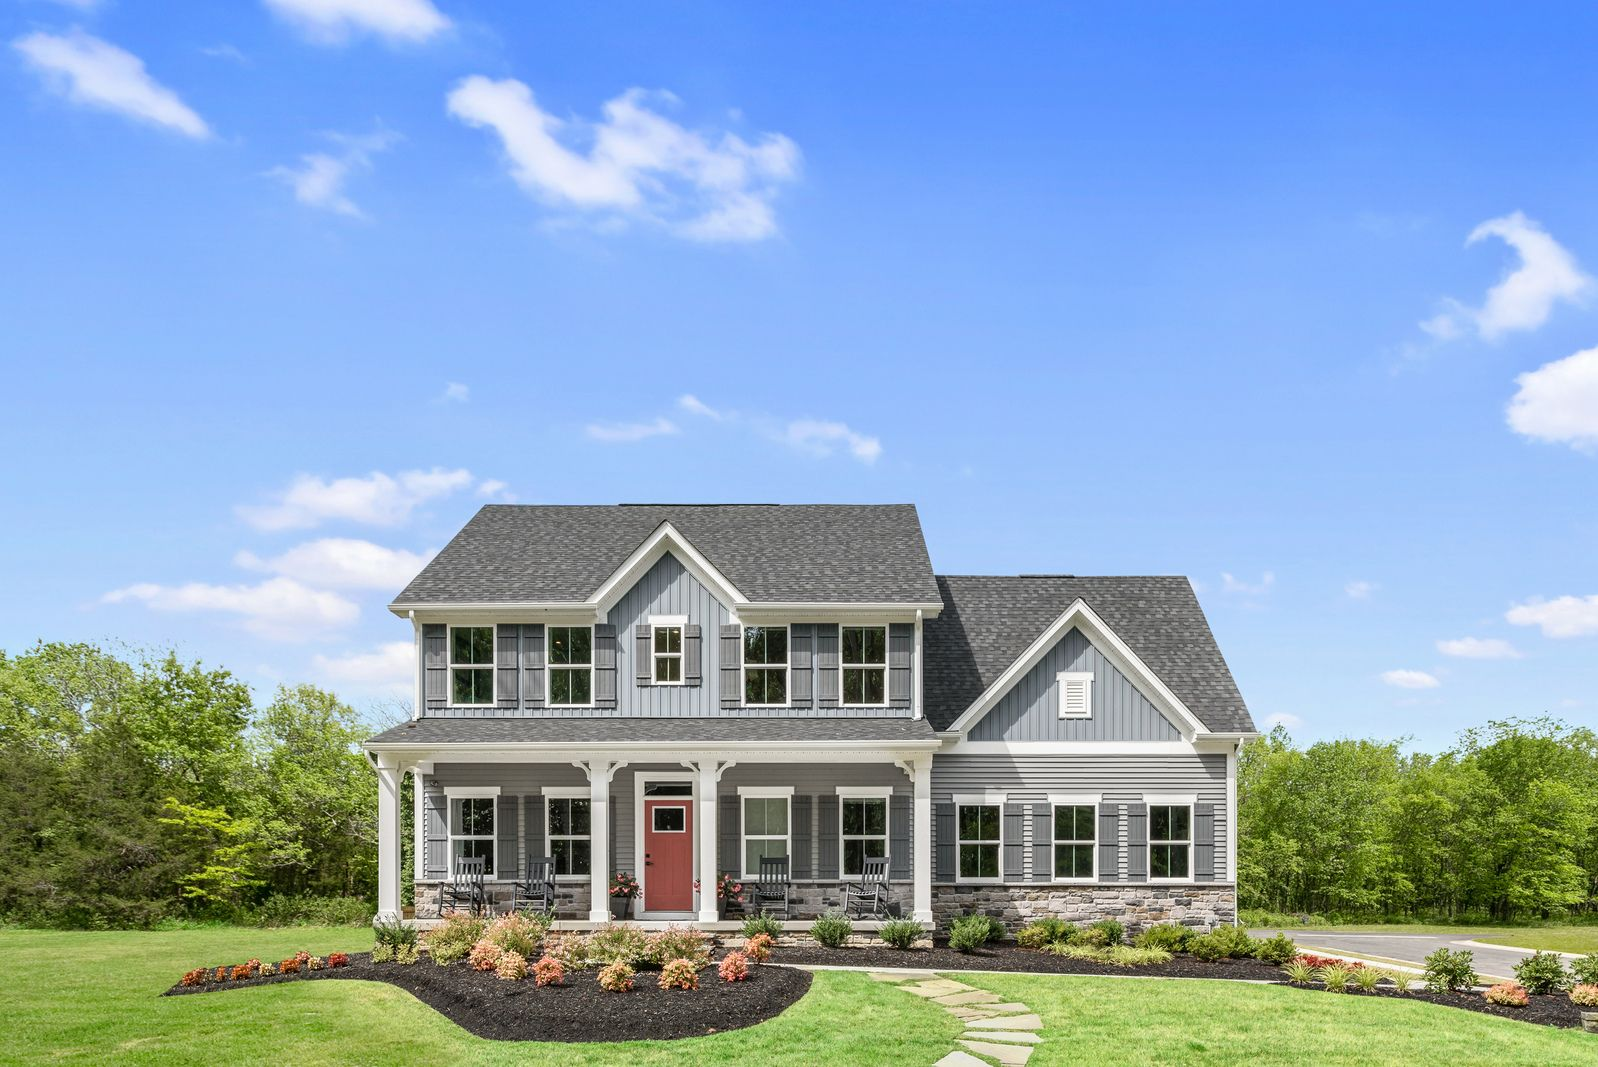 Welcome Home to Vista Verde:Serene setting up to 1 acre & wooded homesites! Upscale living in this beautiful pool community. Best Value in Liberty Twp from the upper $300s. Click here to learn more!